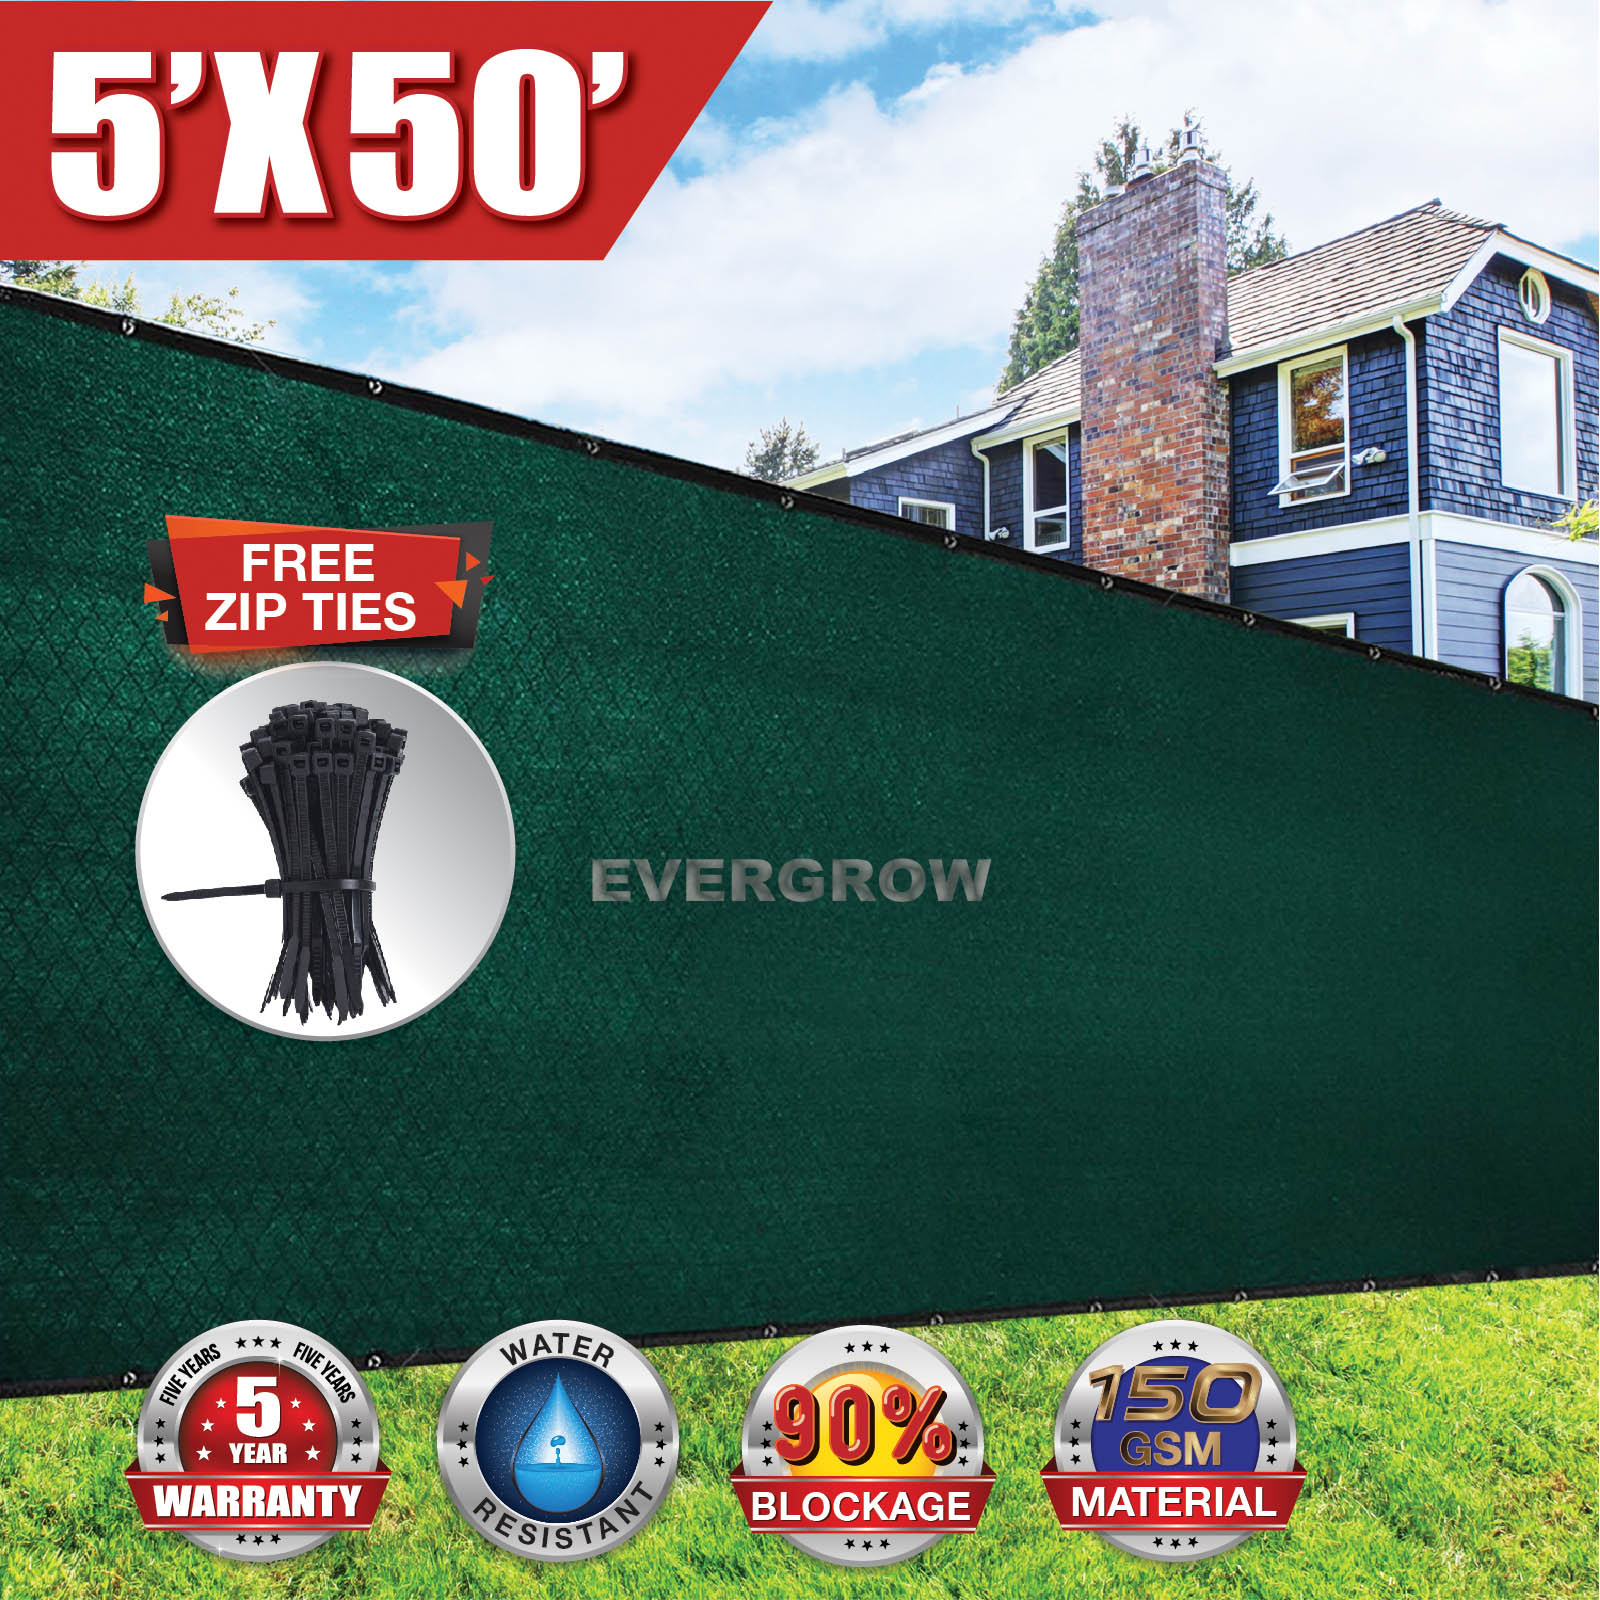 EVERGROW® 5' x 50' Dark Green Fence Privacy Screen Windscreen Shade Fabric Mesh Tarp Mesh Brass Grommets FREE Zip Ties with 5 Years Warranty 90% UV Blockage (G-FENCE-5X50-GREEN)